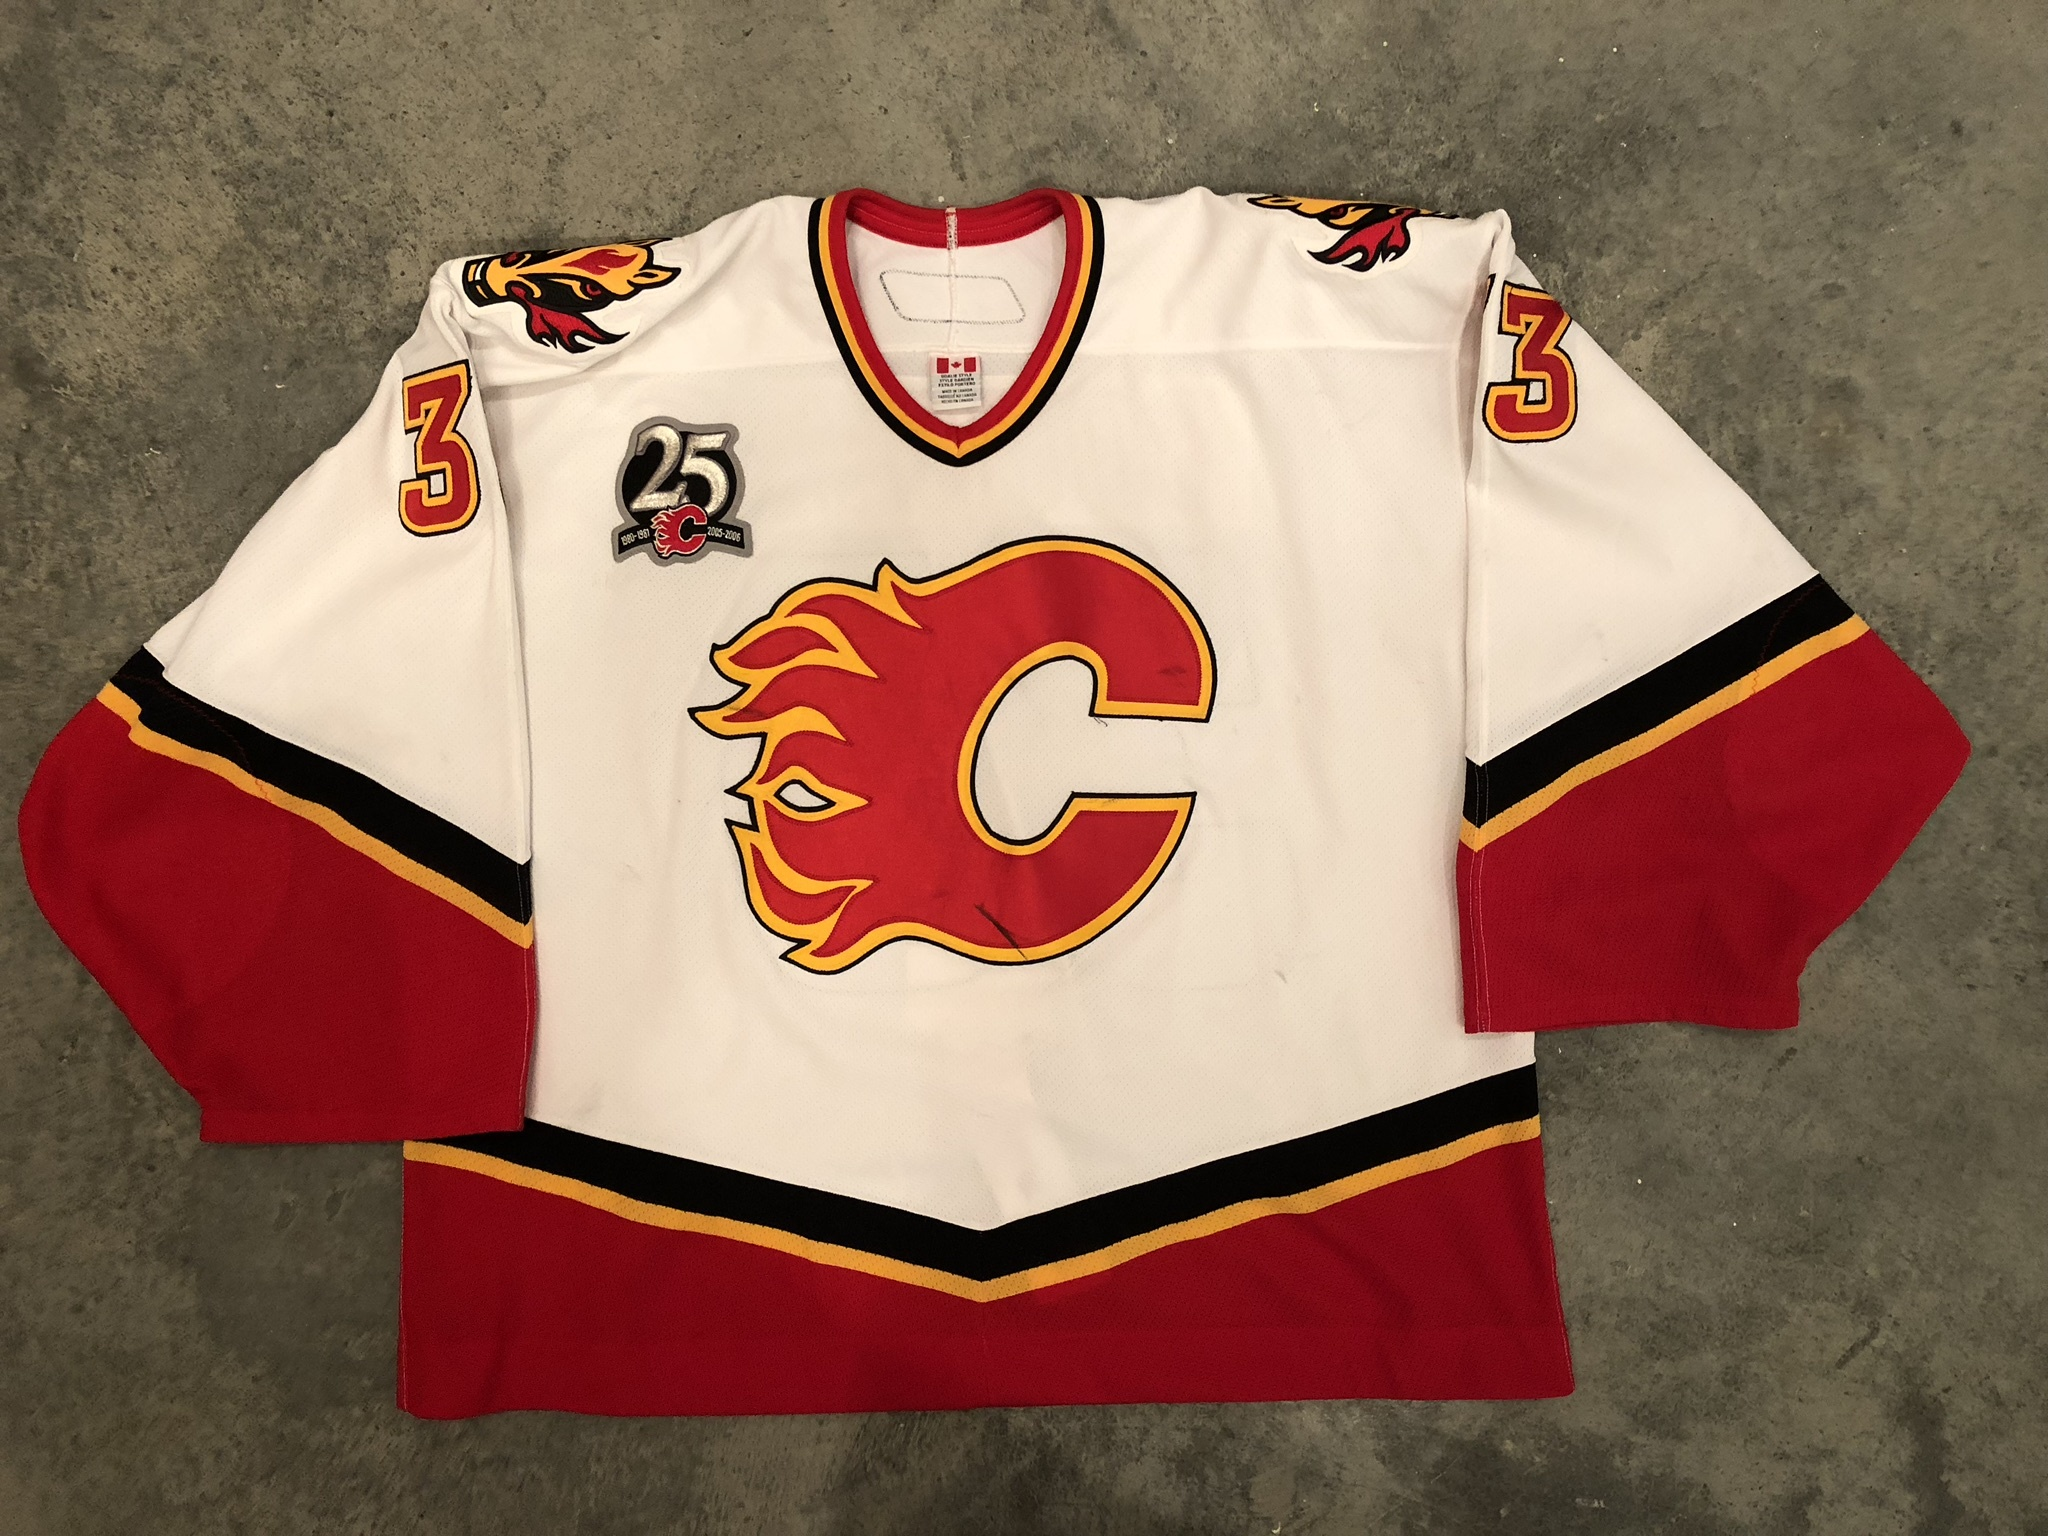 2005-06 Brian Boucher game worn road jersey with Flames 25th anniversary patch